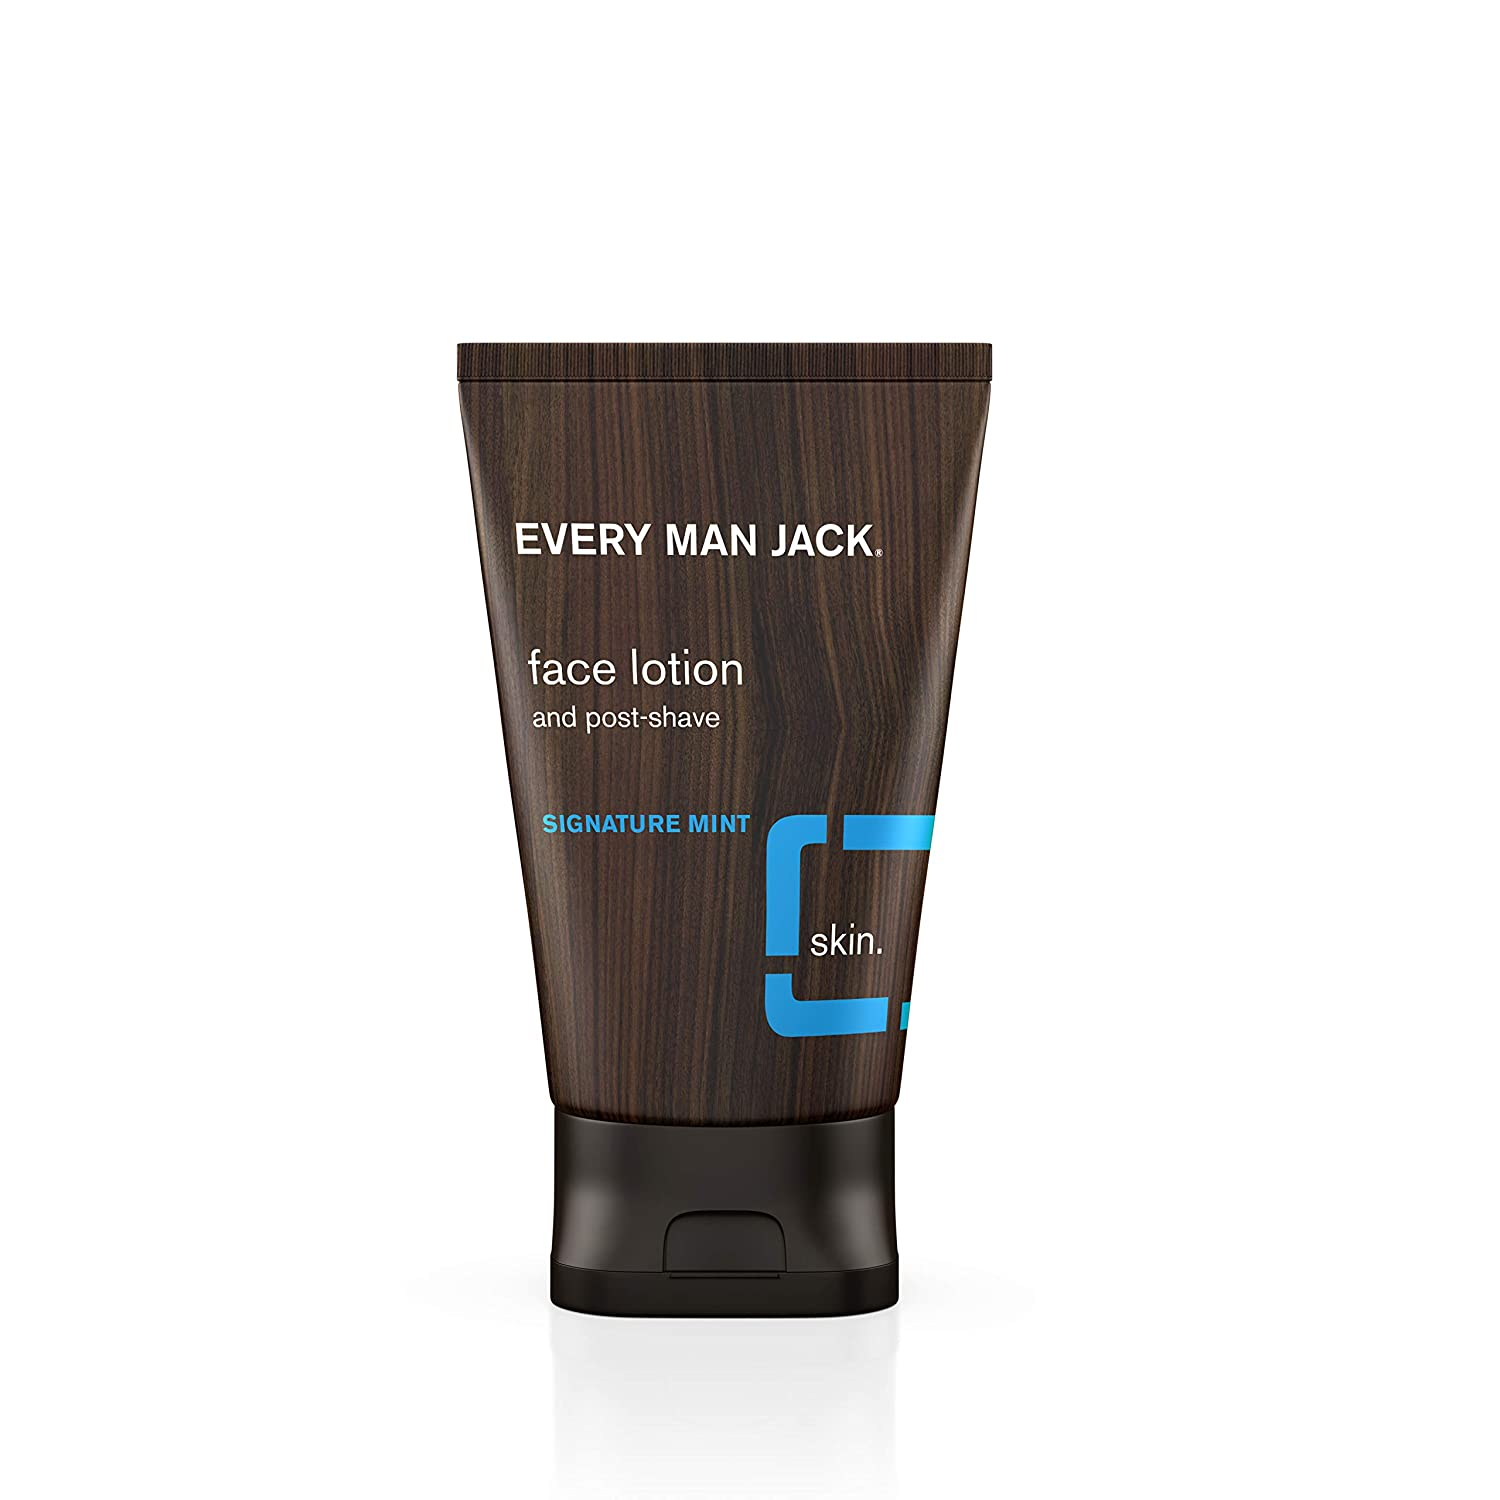 Every Man Jack Post Shave Face Lotion, Signature Mint, 4.2 oz